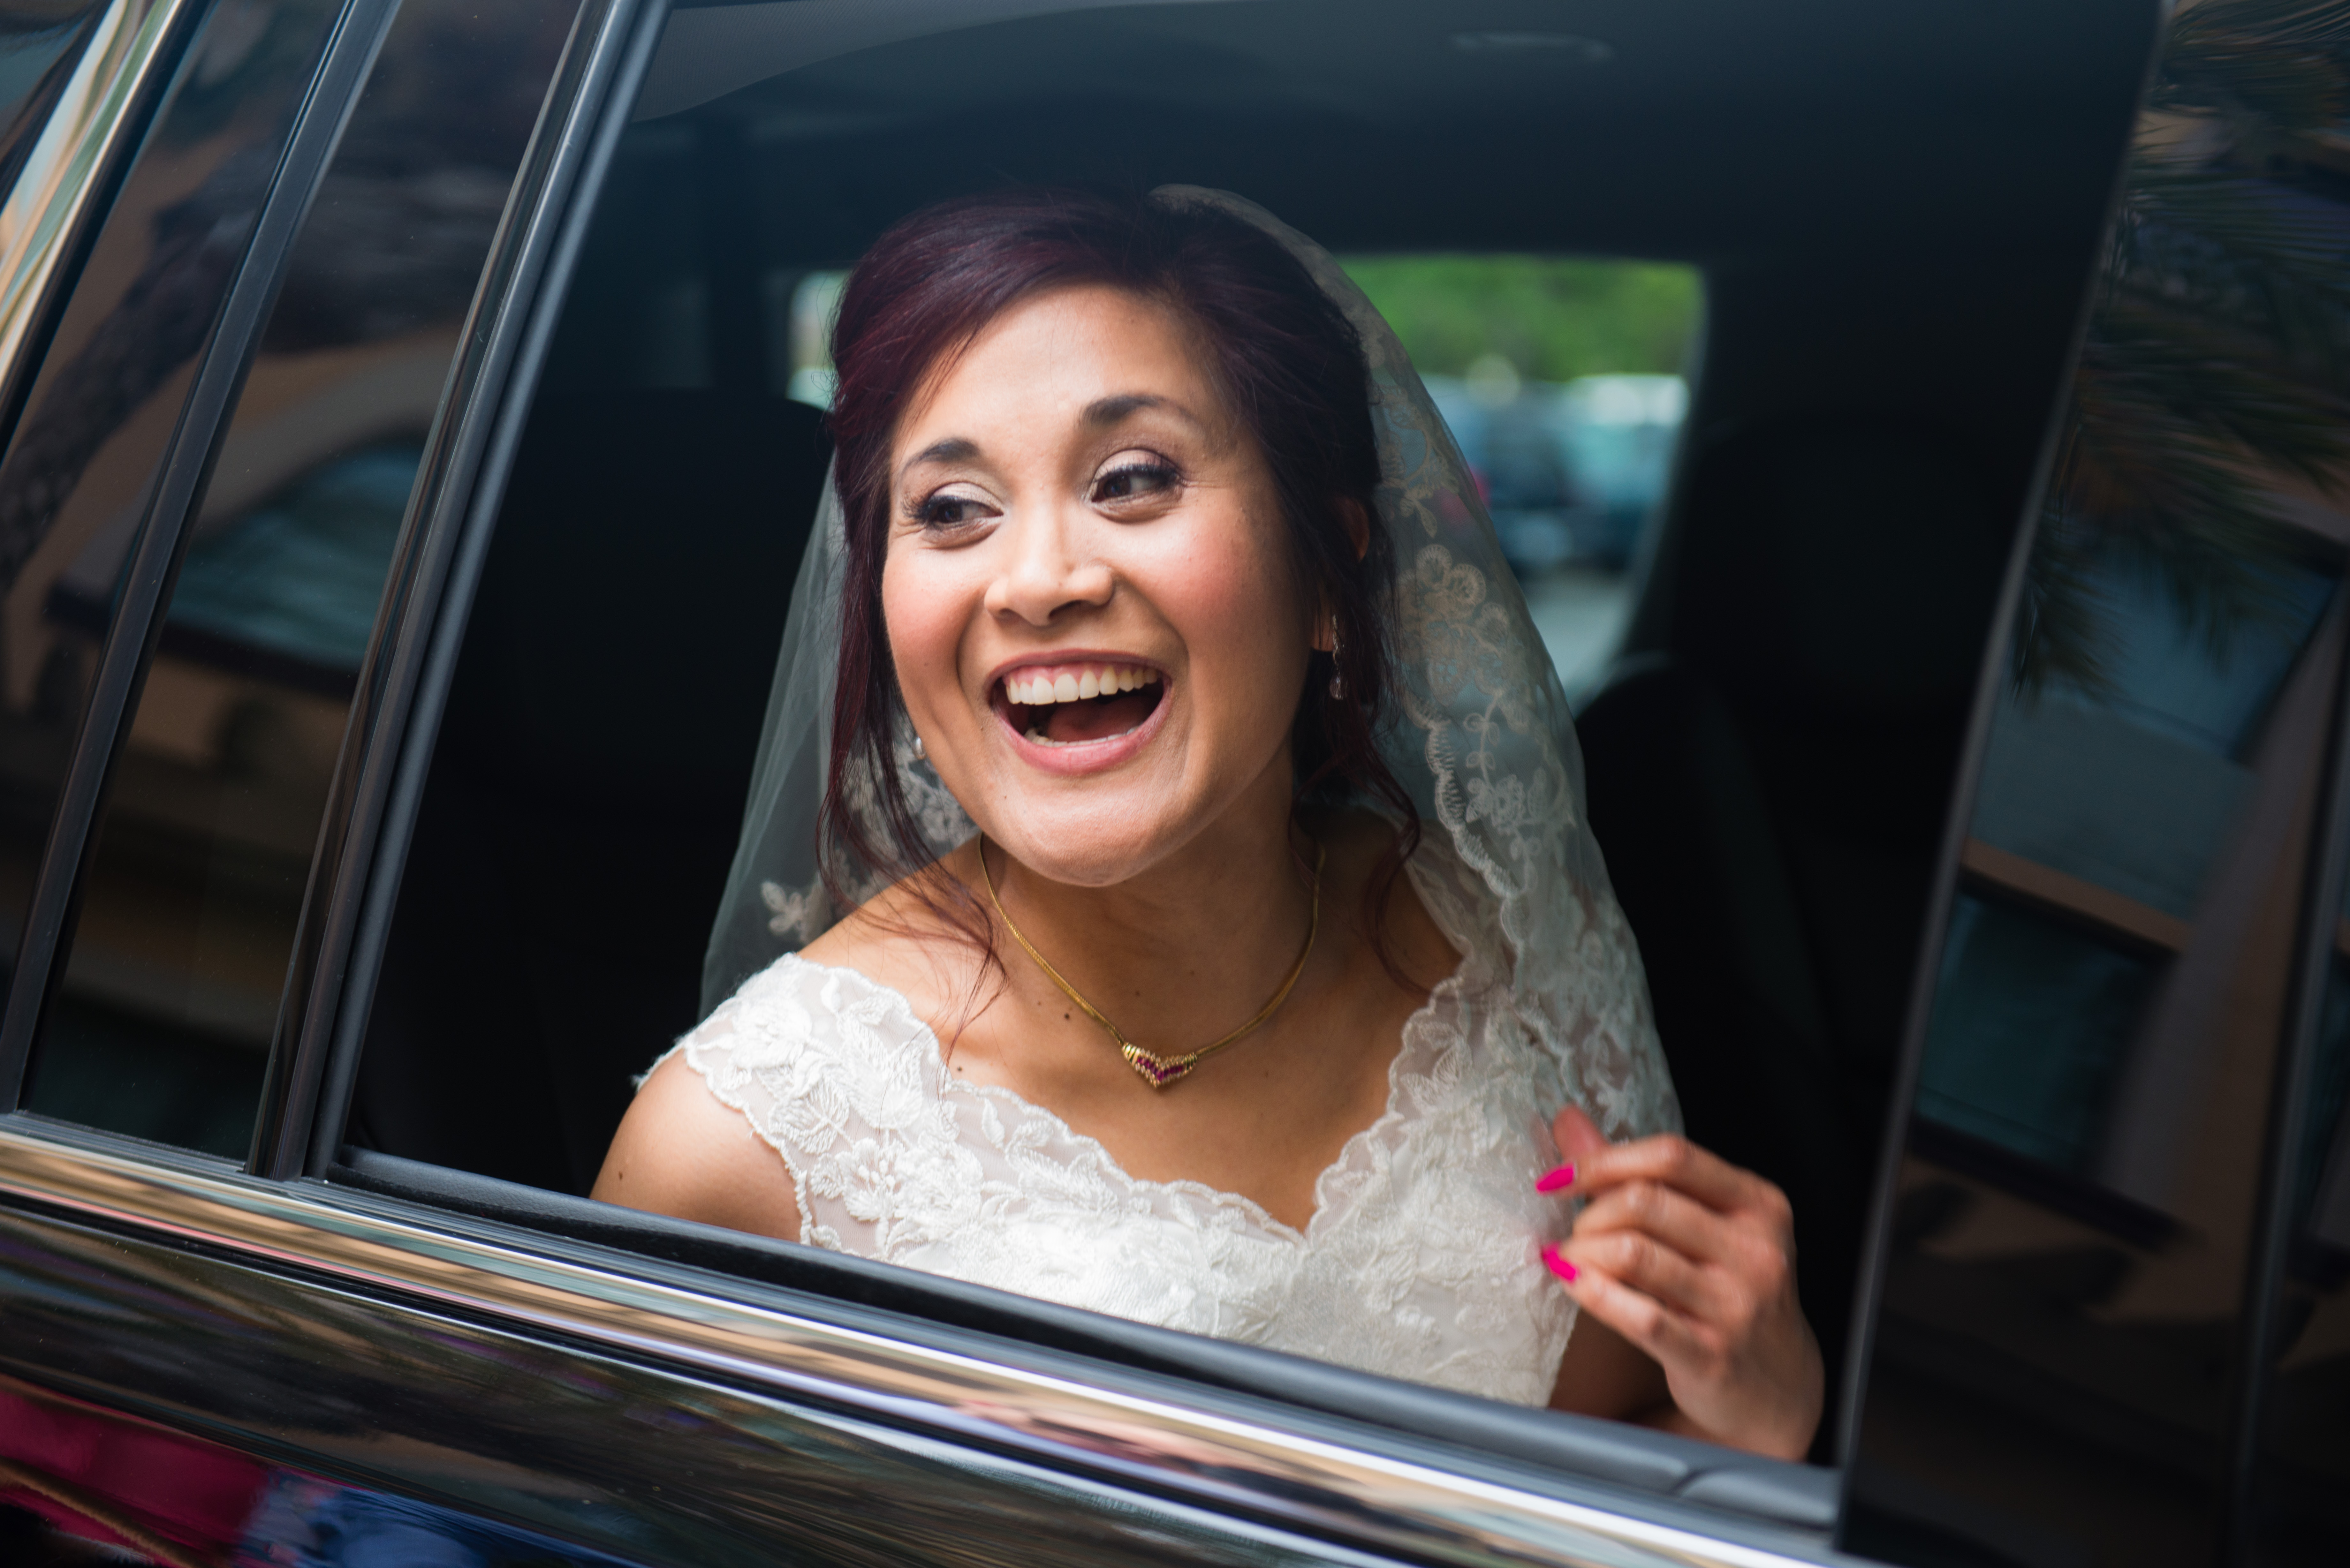 Linda + Corson Wedding-HoffmanPhotoVideo-132